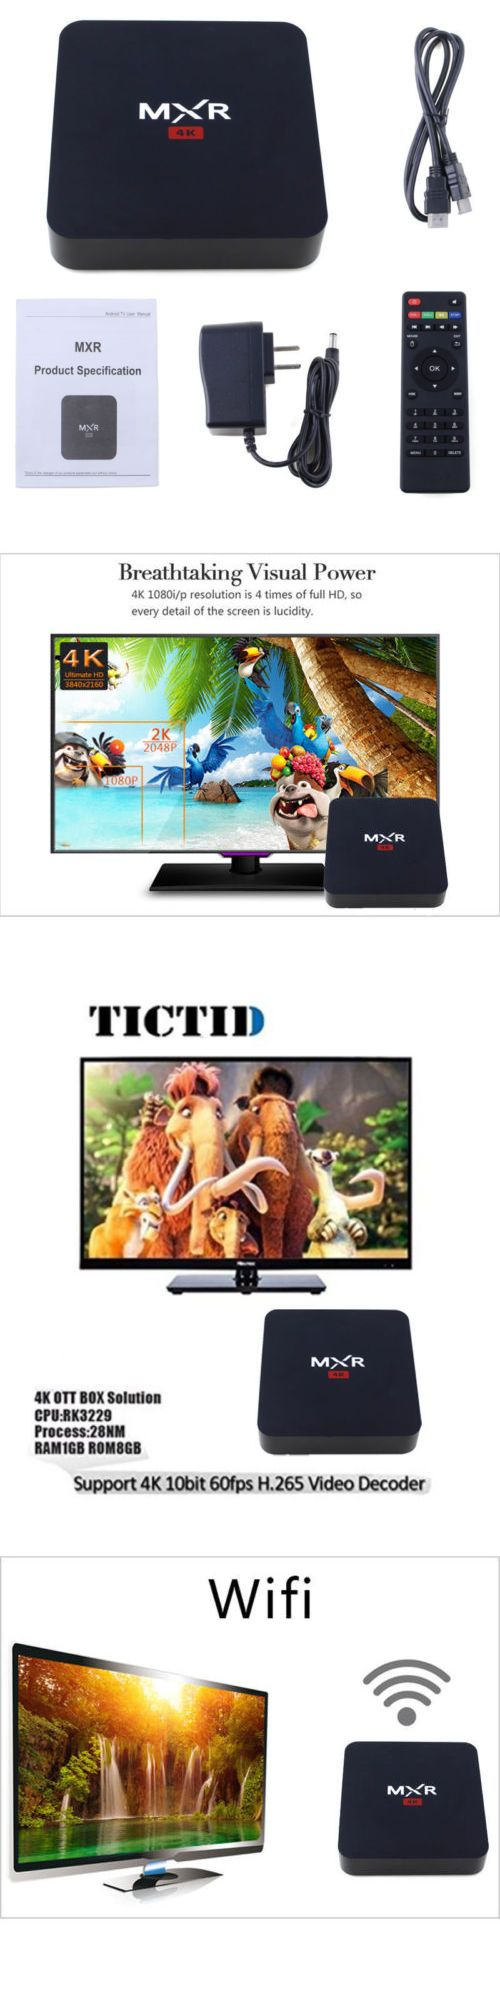 Cable TV Boxes: Vander Quad Core Android 5.1 Mxr Smart Tv Box 4K Wifi Hdmi Ram Hd 1080P -> BUY IT NOW ONLY: $31.99 on eBay!